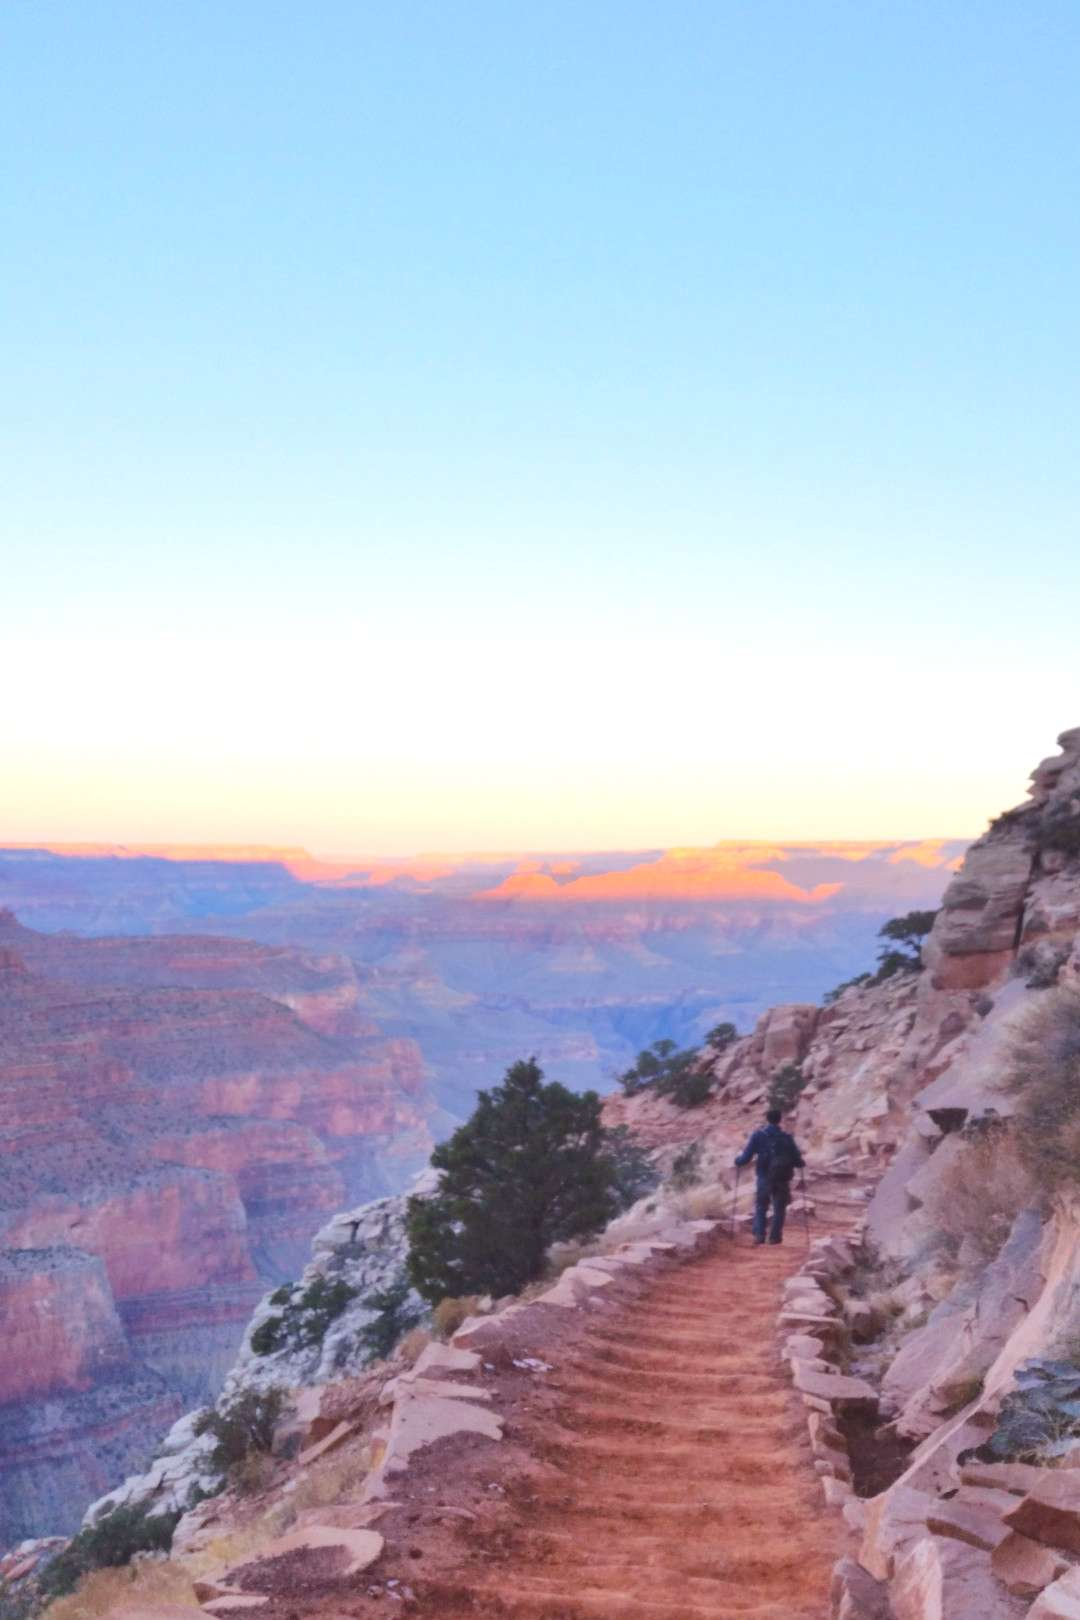 Grand Canyon sunrise hiking national park picture